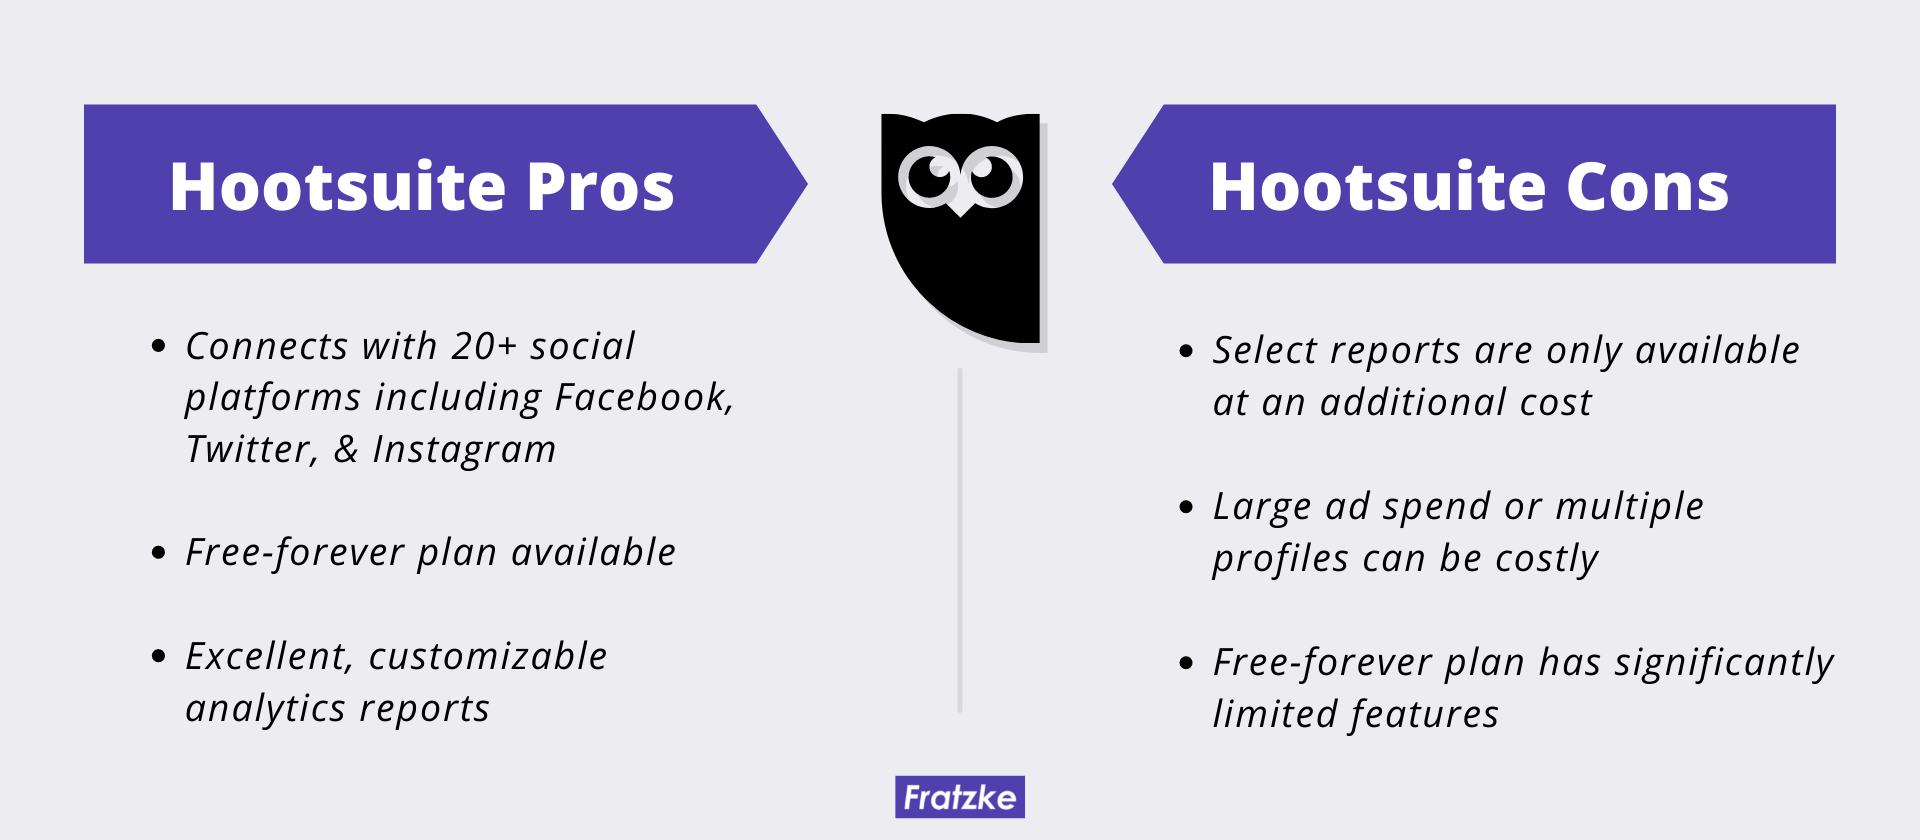 Hootsuite Pros and Cons